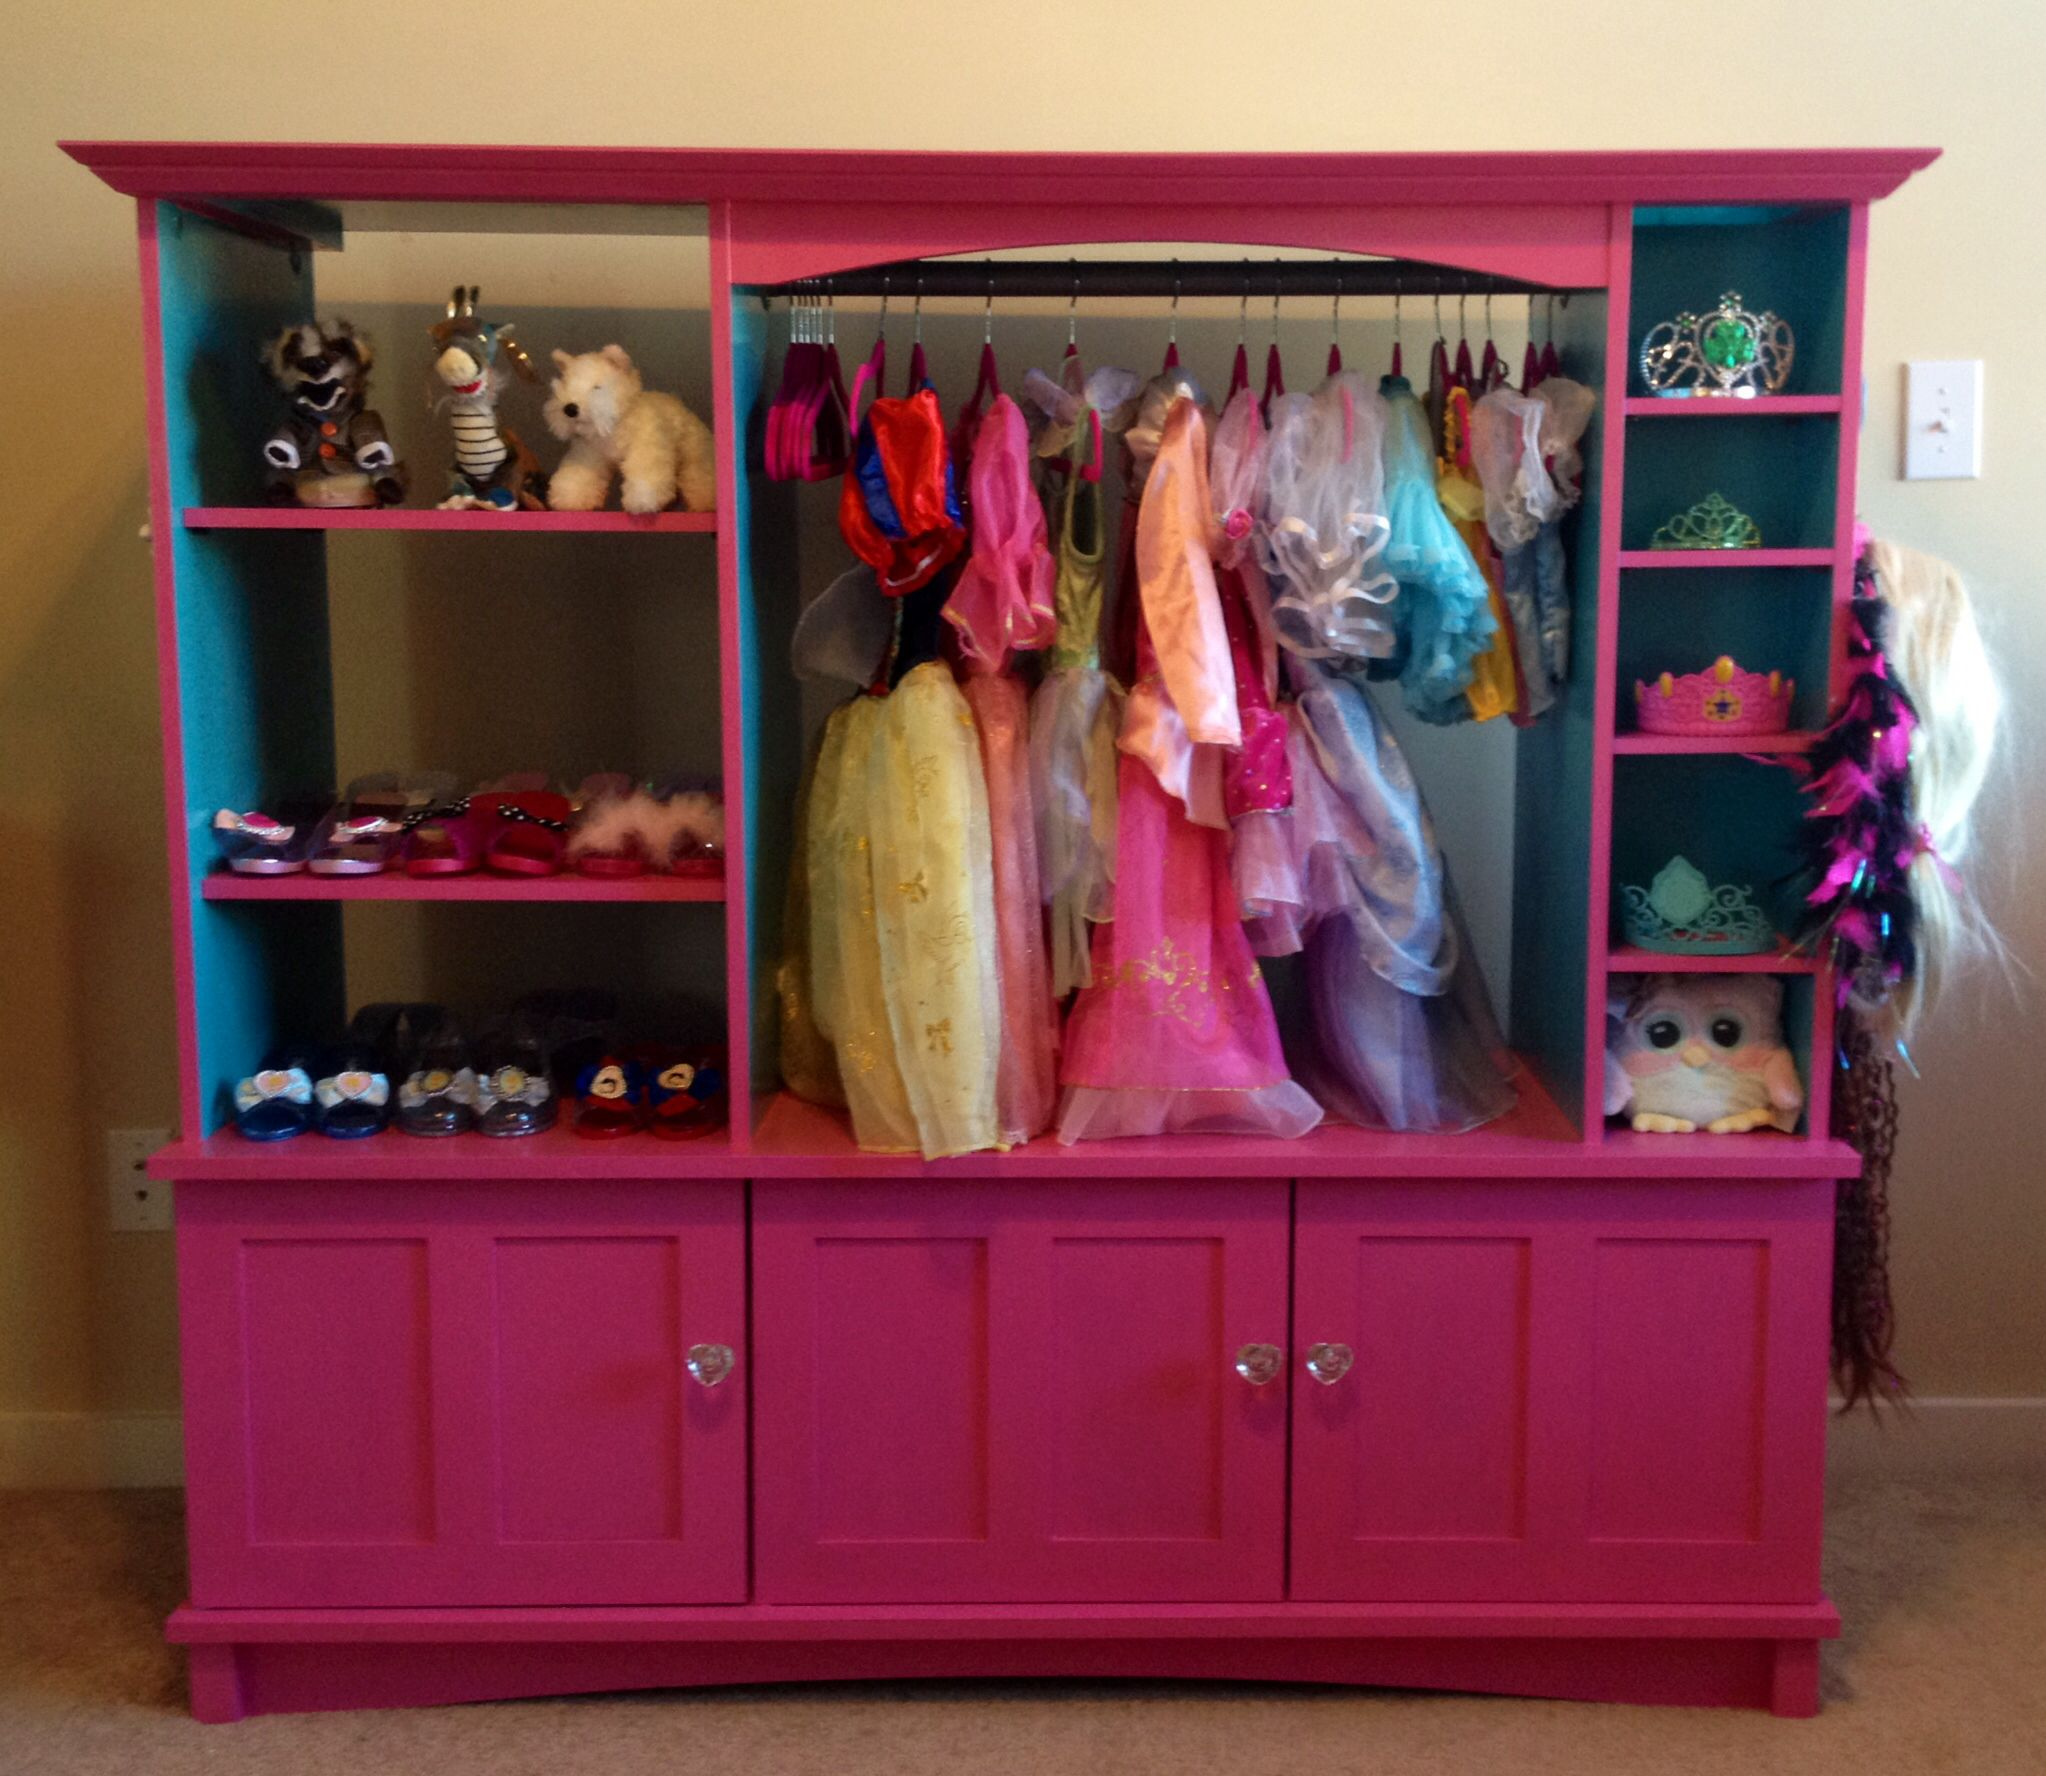 Dress up closet made out of an old entertainment center